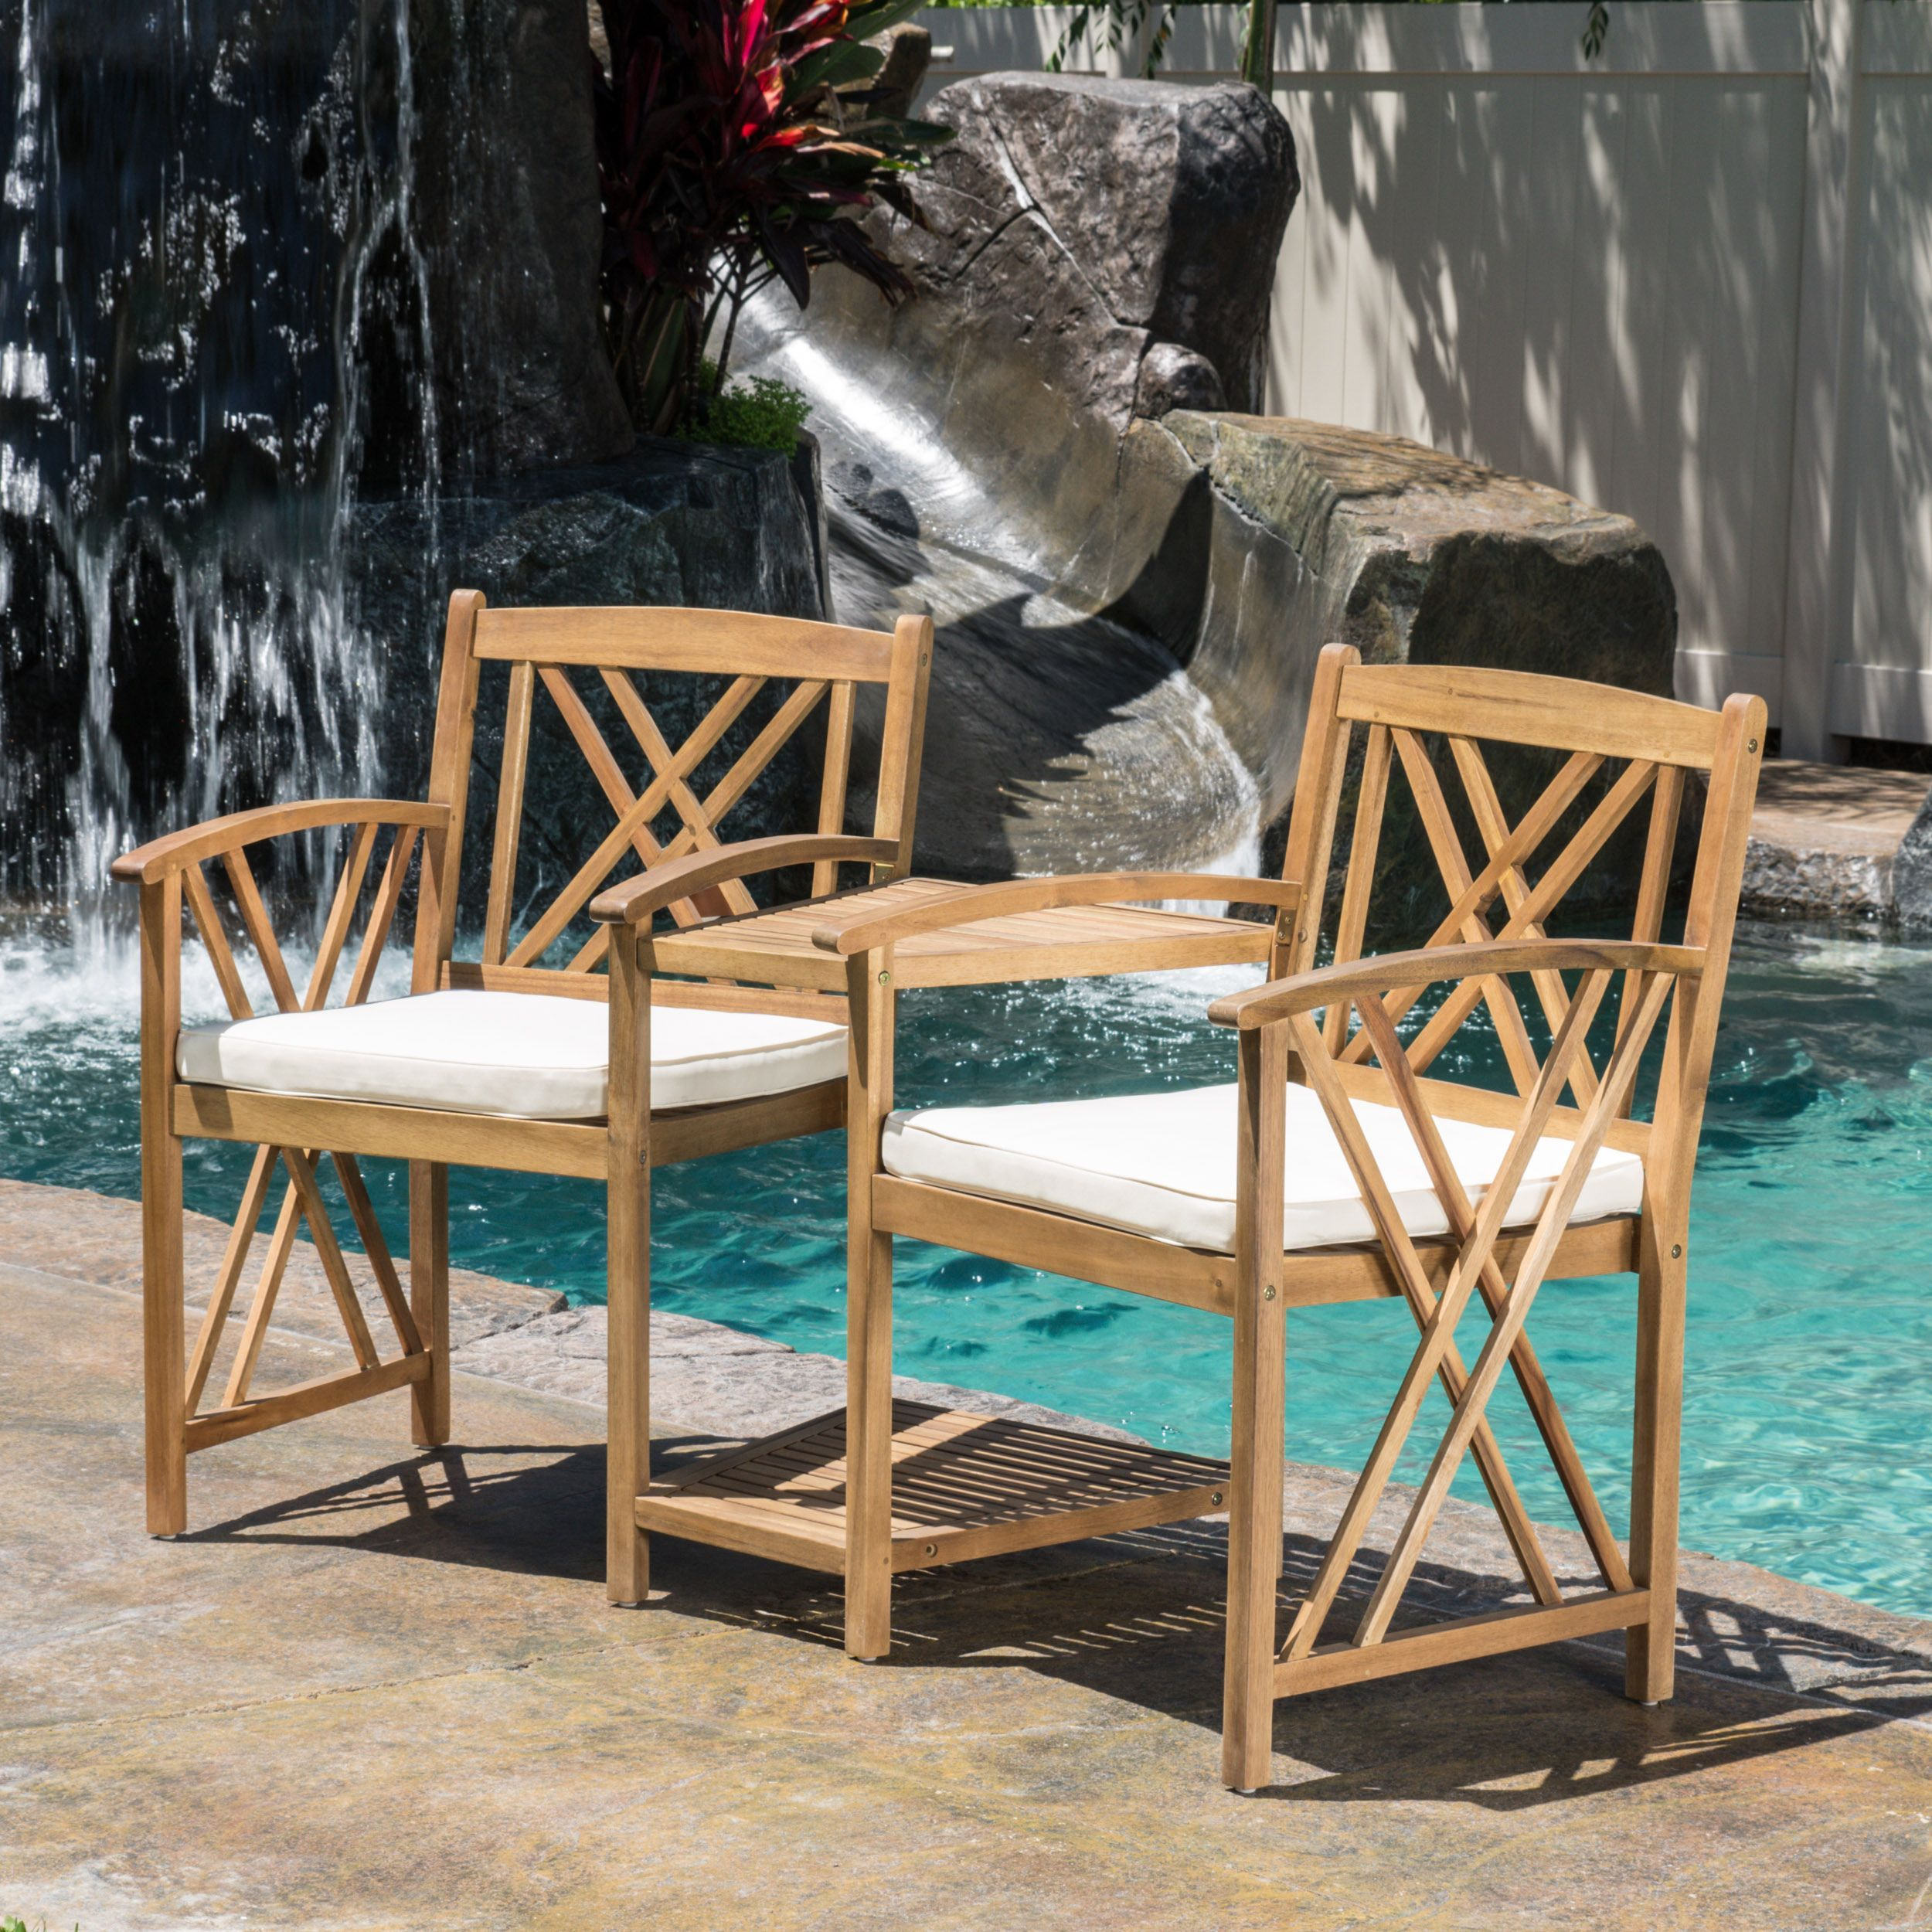 The Bayshore outdoor acacia wood adjoining chairs offer all the